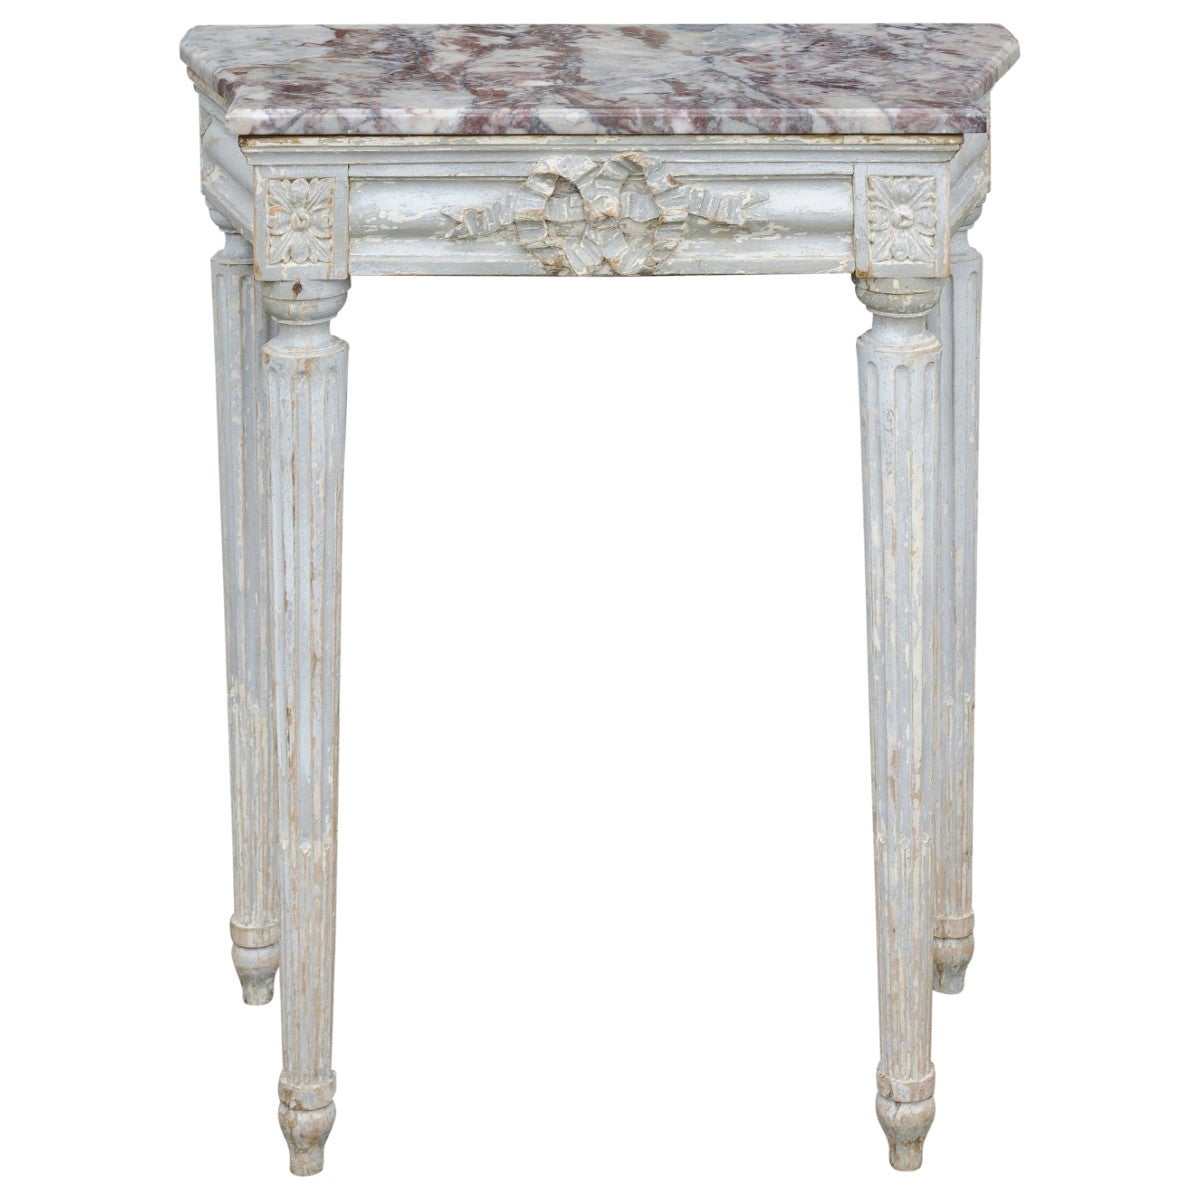 French Neoclassical Period 1800s Painted Wood Console Table with Marble Top